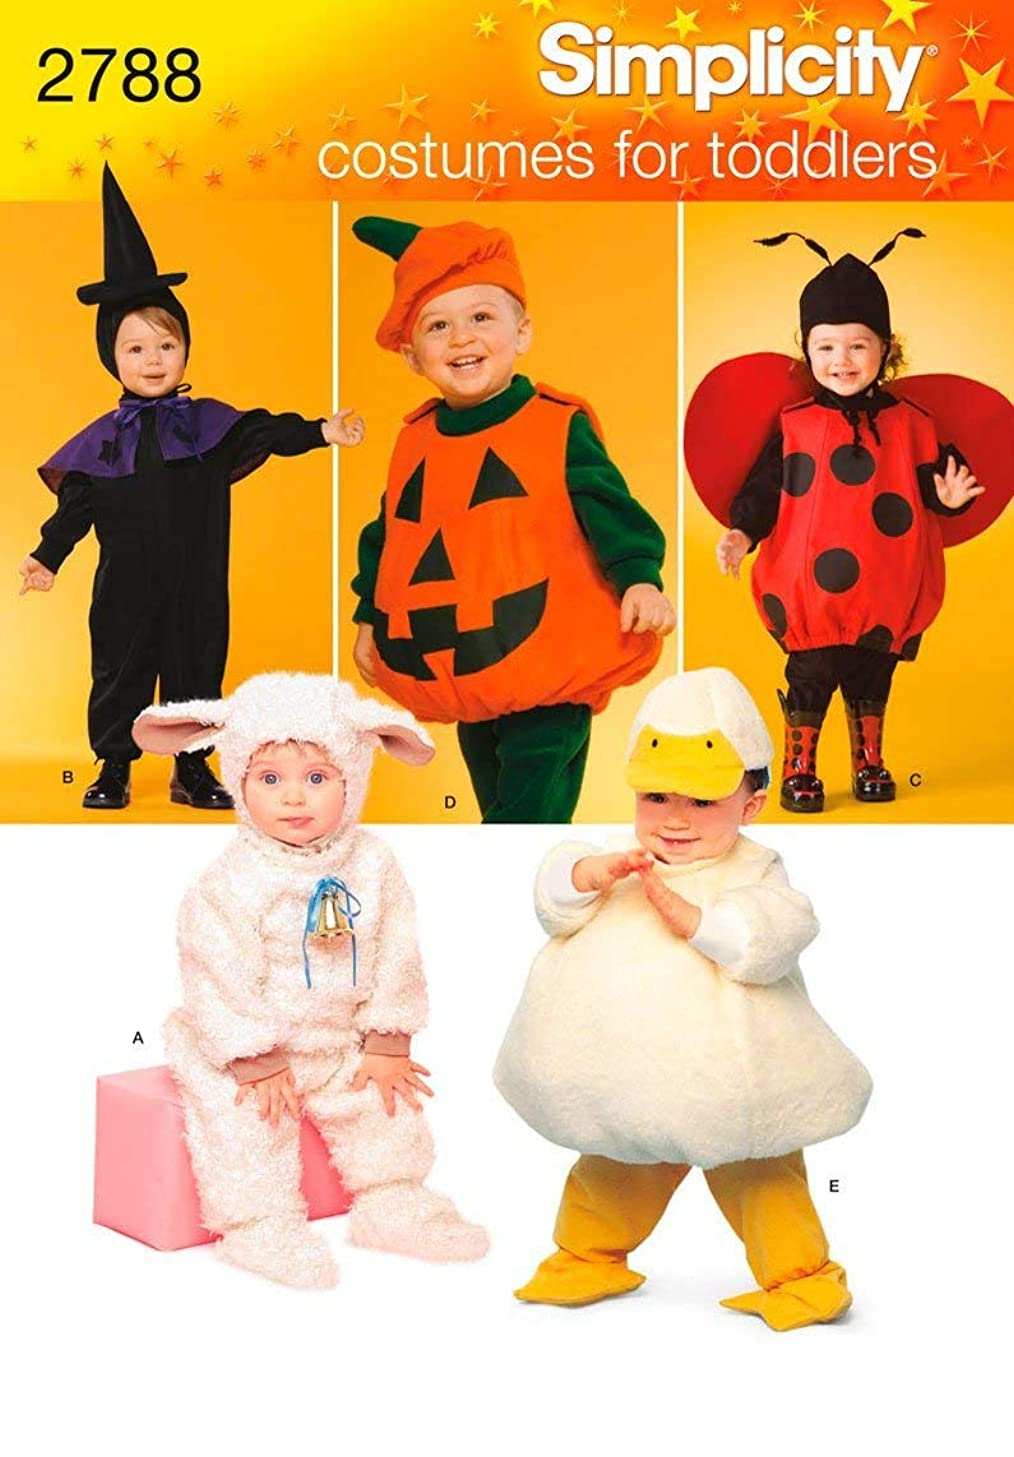 Simplicity 2788 Lamb, Chick, Witch, Pumpkin and Lady Sewing Pattern for Toddlers Halloween Costume, Sizes A 1/2-4